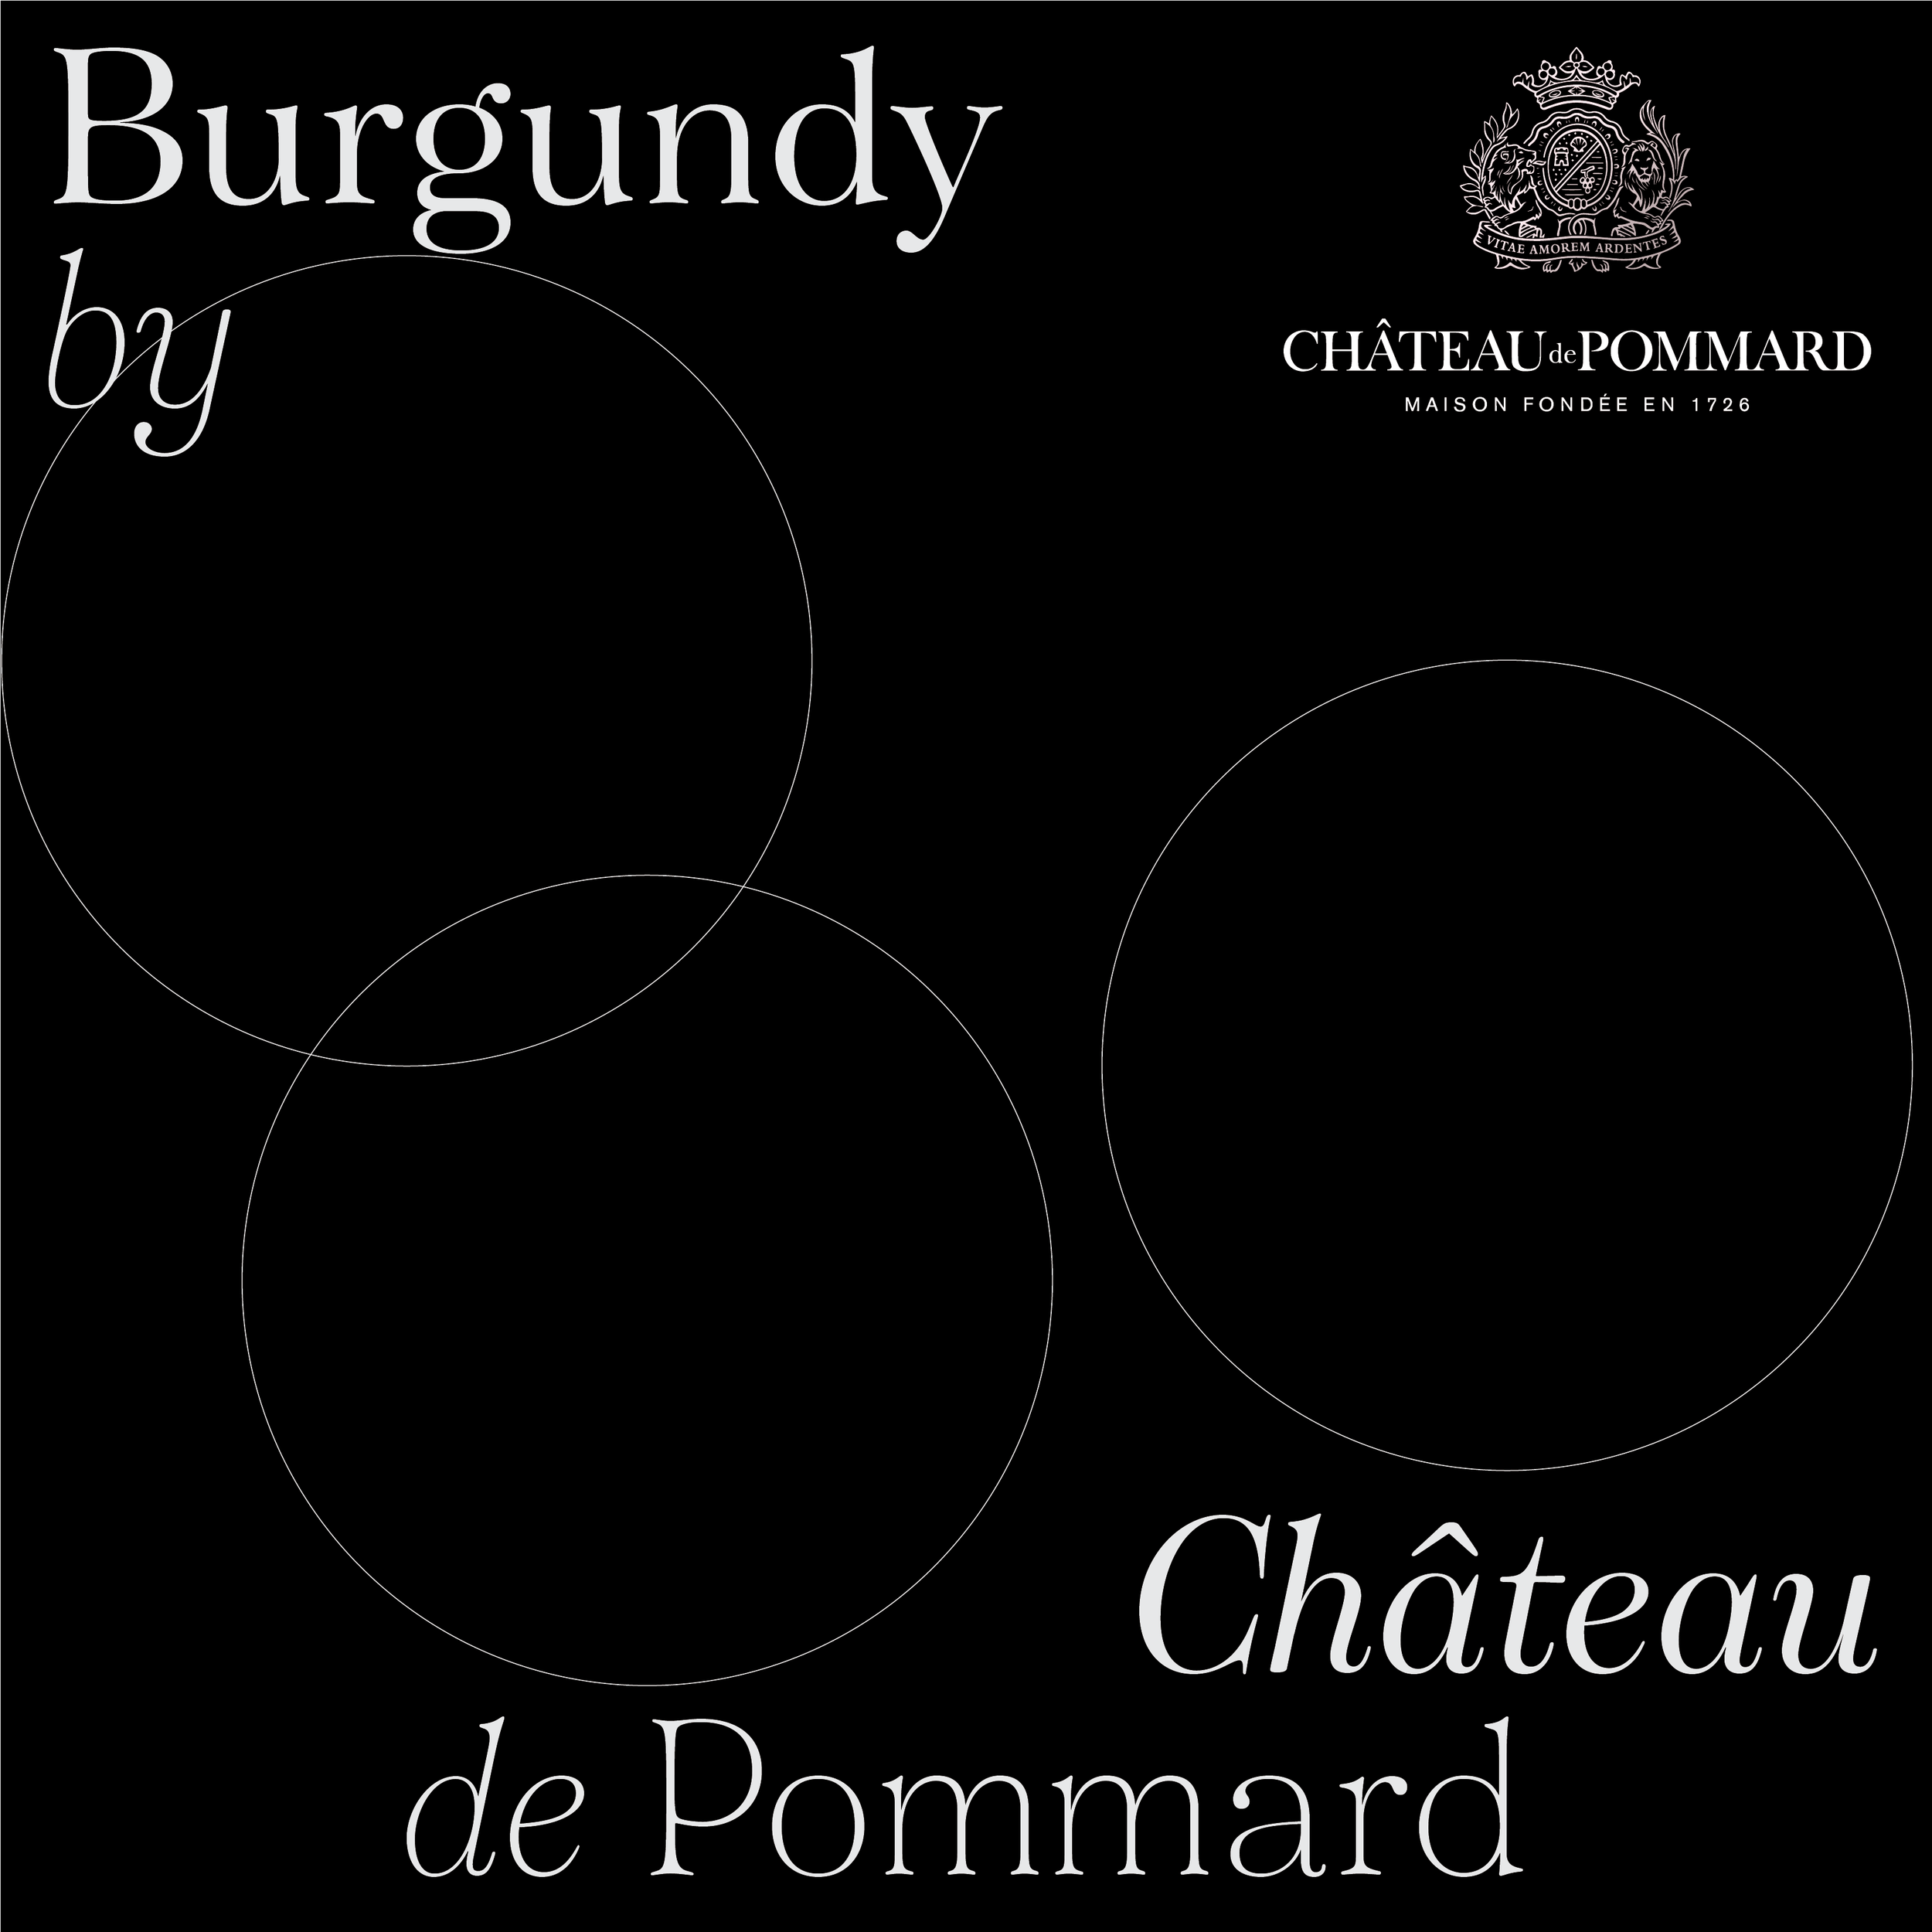 Burgundy by Château de Pommard Downtown Los Angeles October 8, 2019 6:30 PM - 9:00 PM